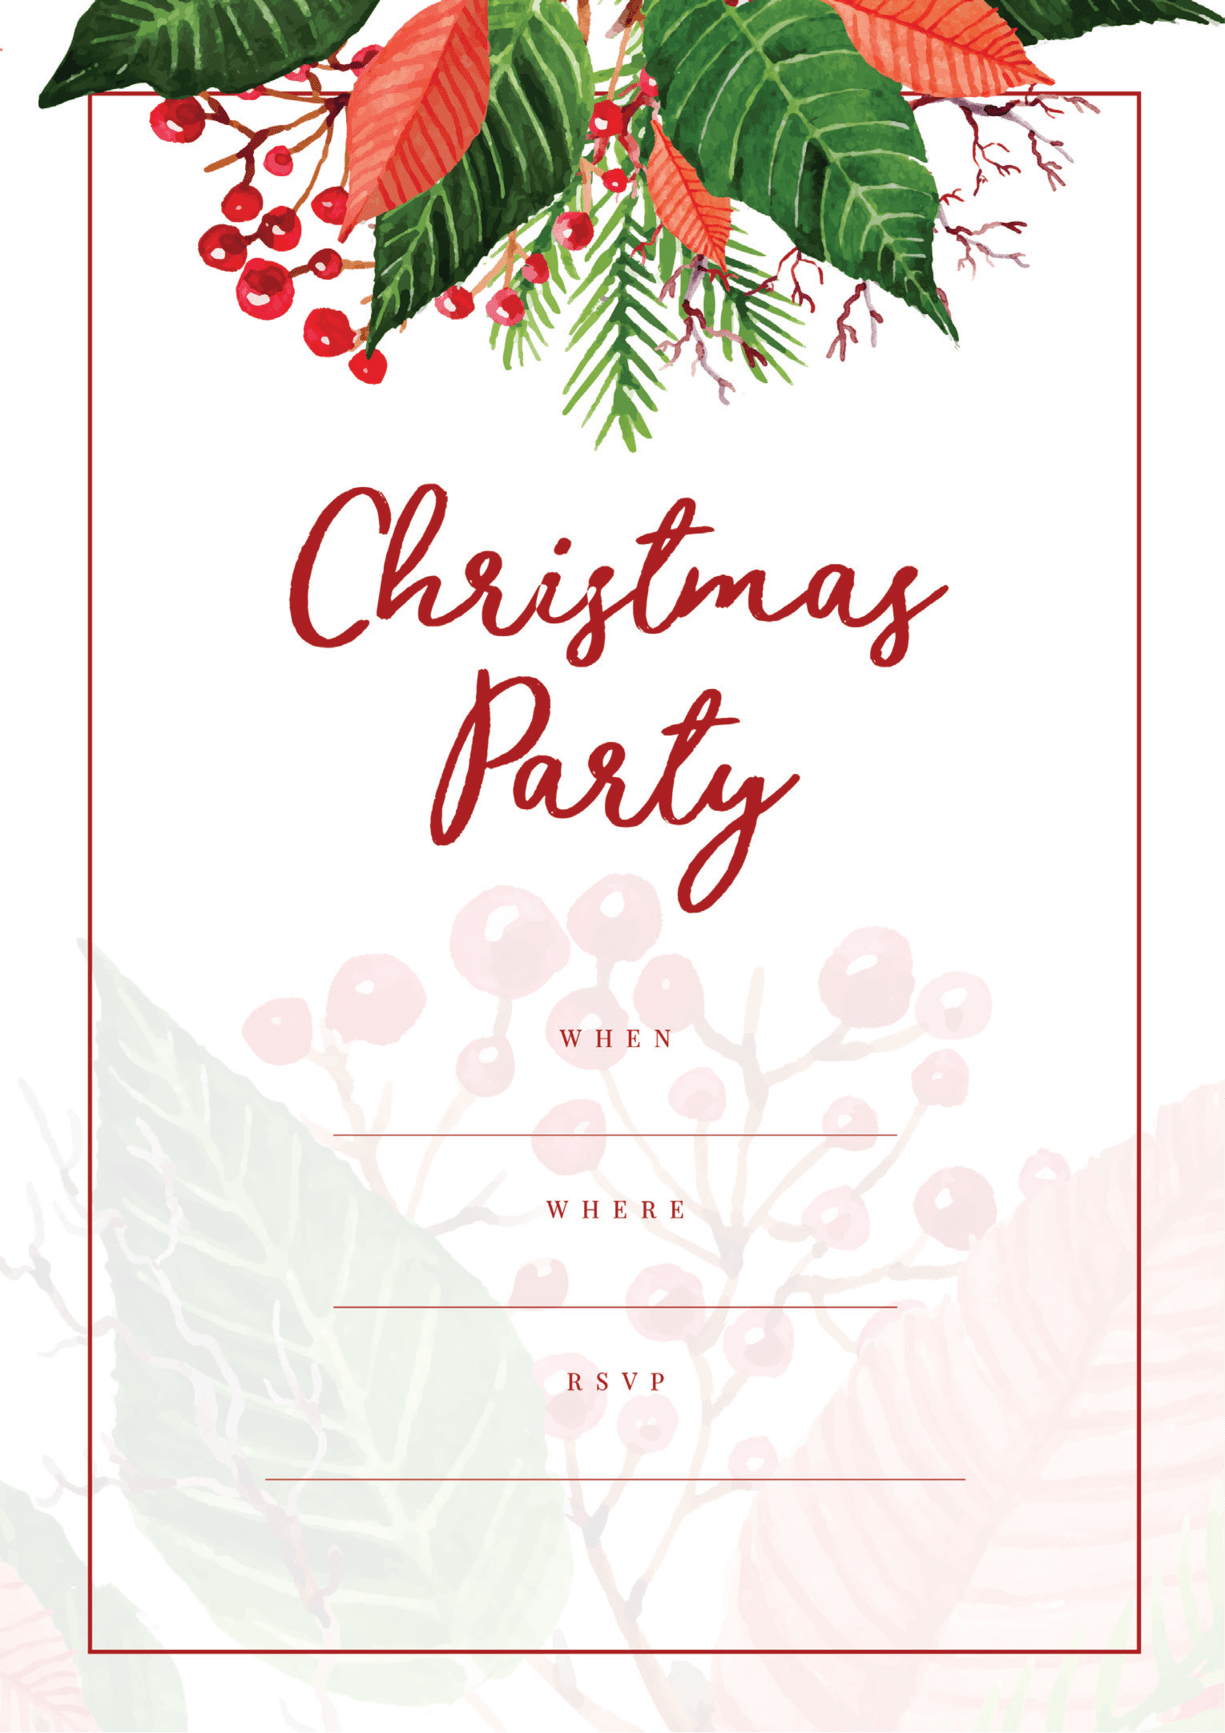 Free Holiday Party Invitations - All Free Invitations